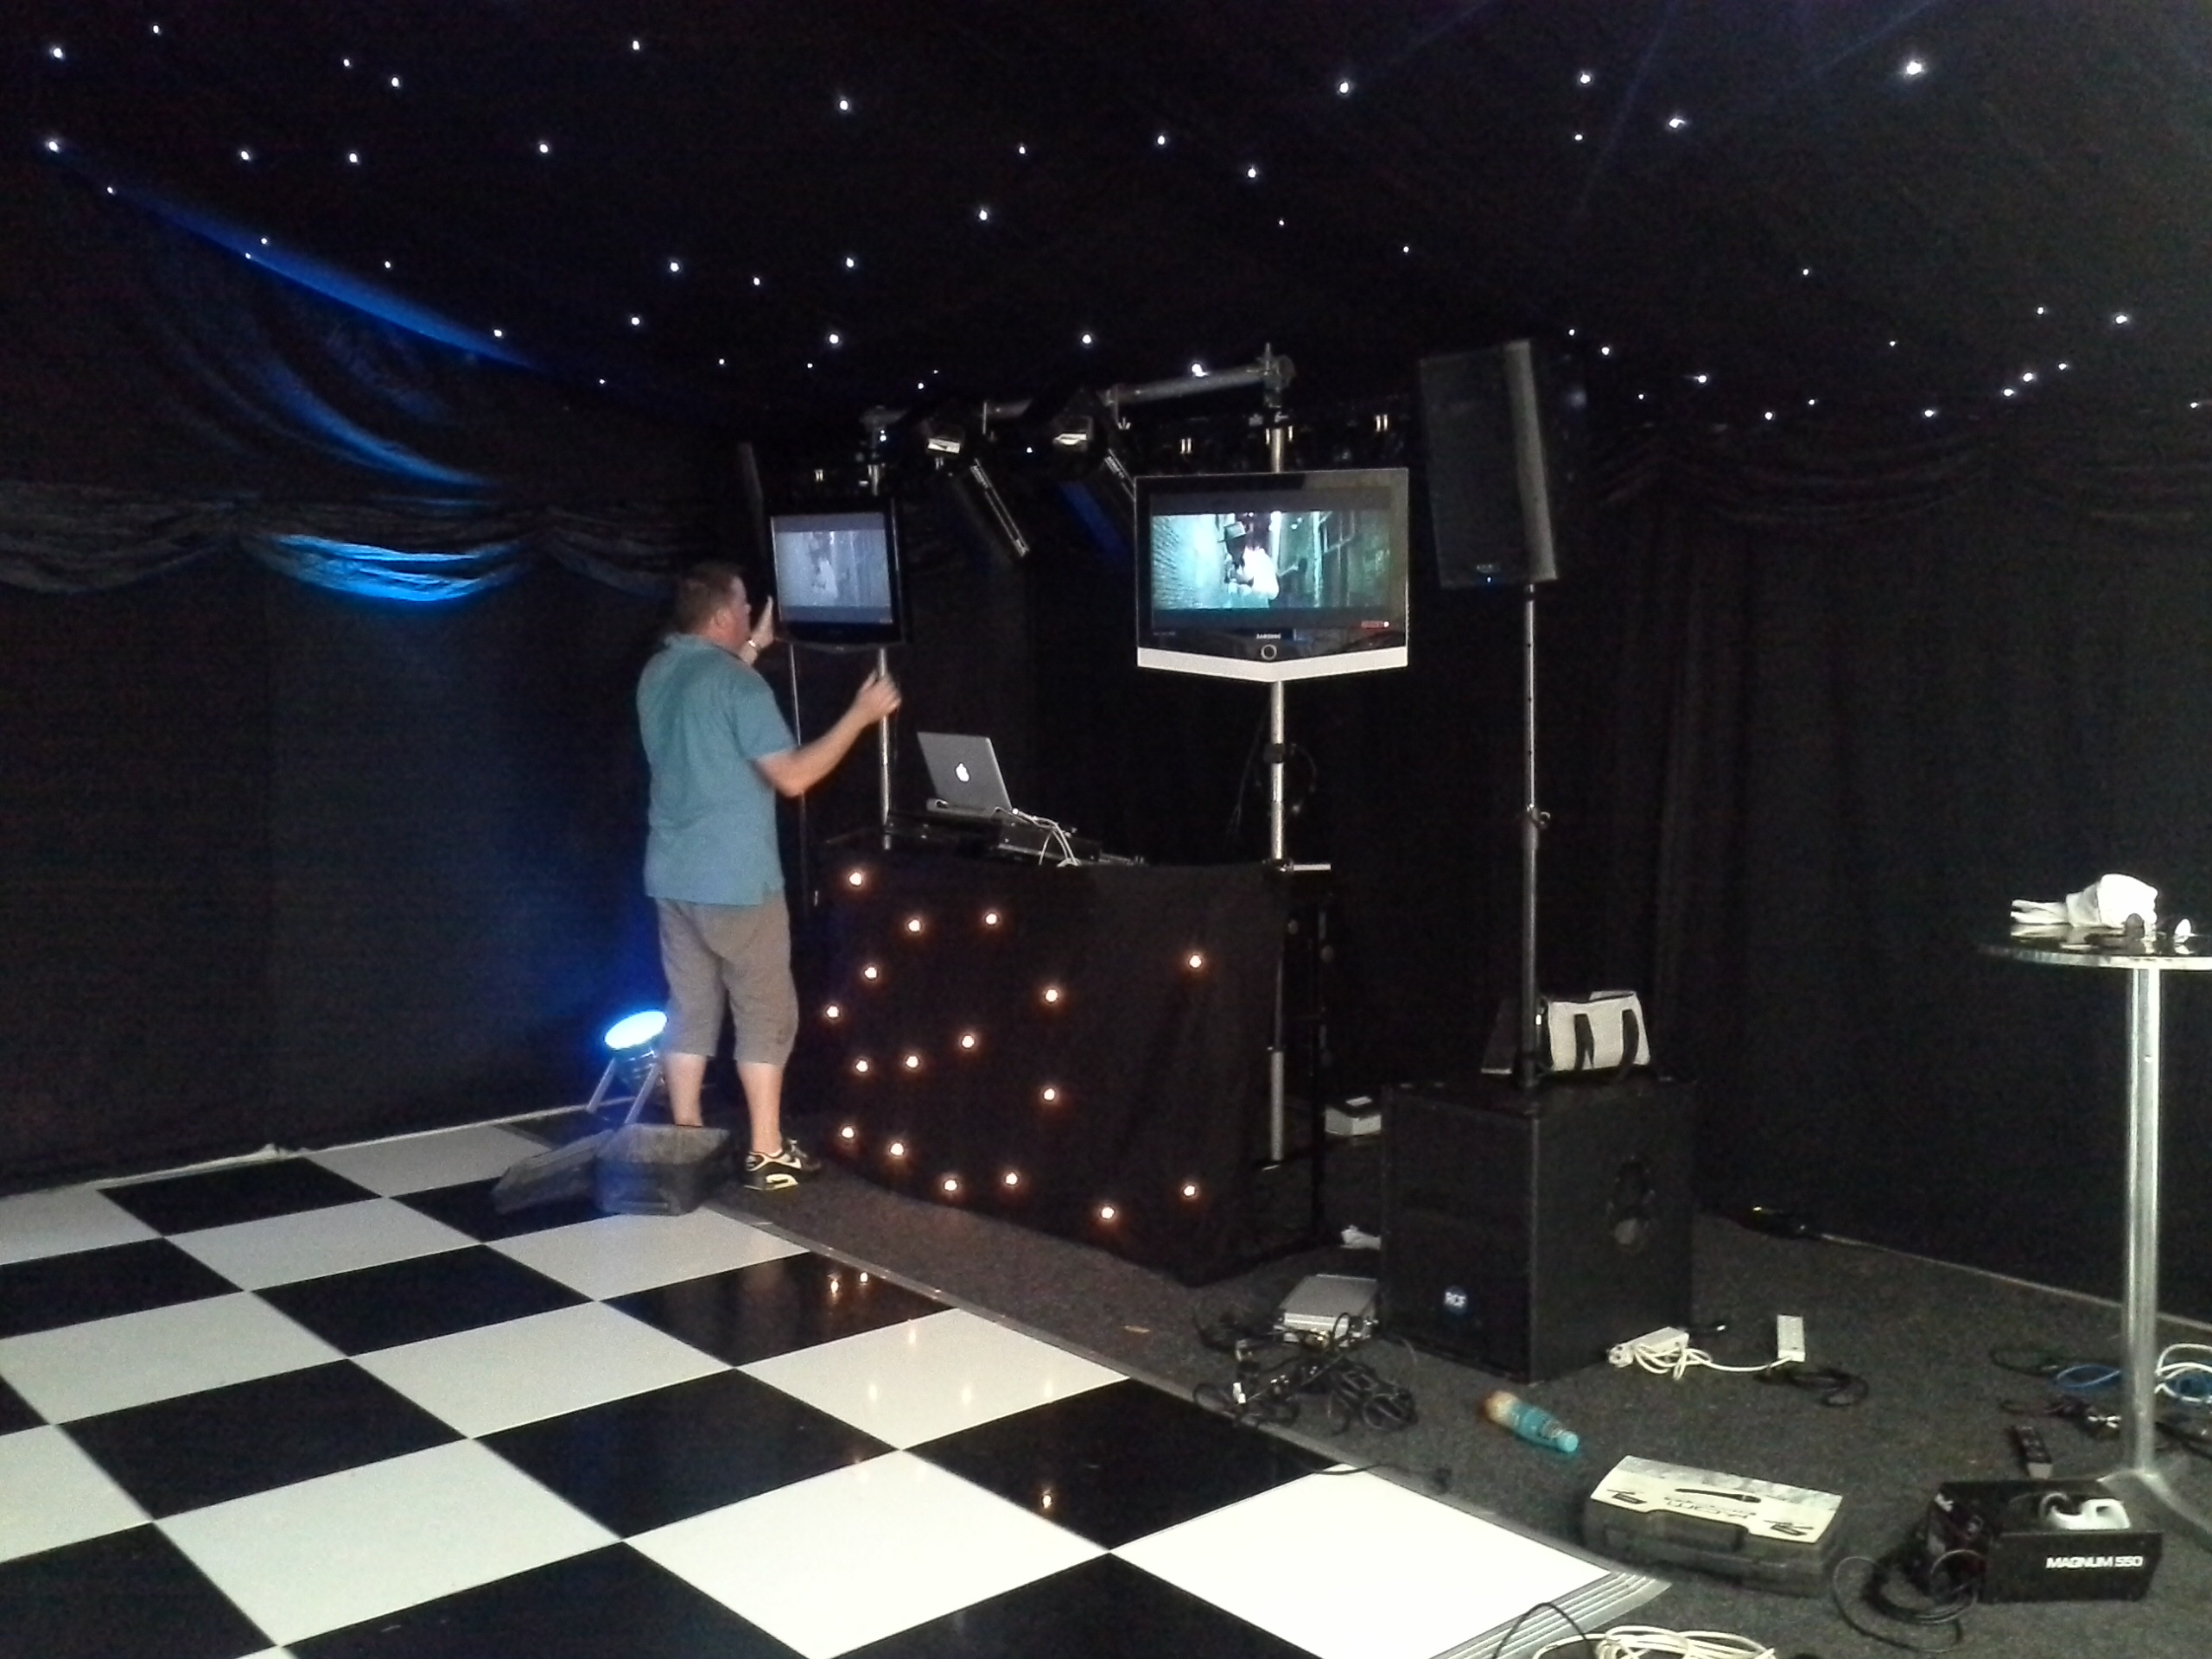 Our video DJ Simon - fixing up the screens ready for the party peeps to boogie on down, dancing and watching their fave tunes